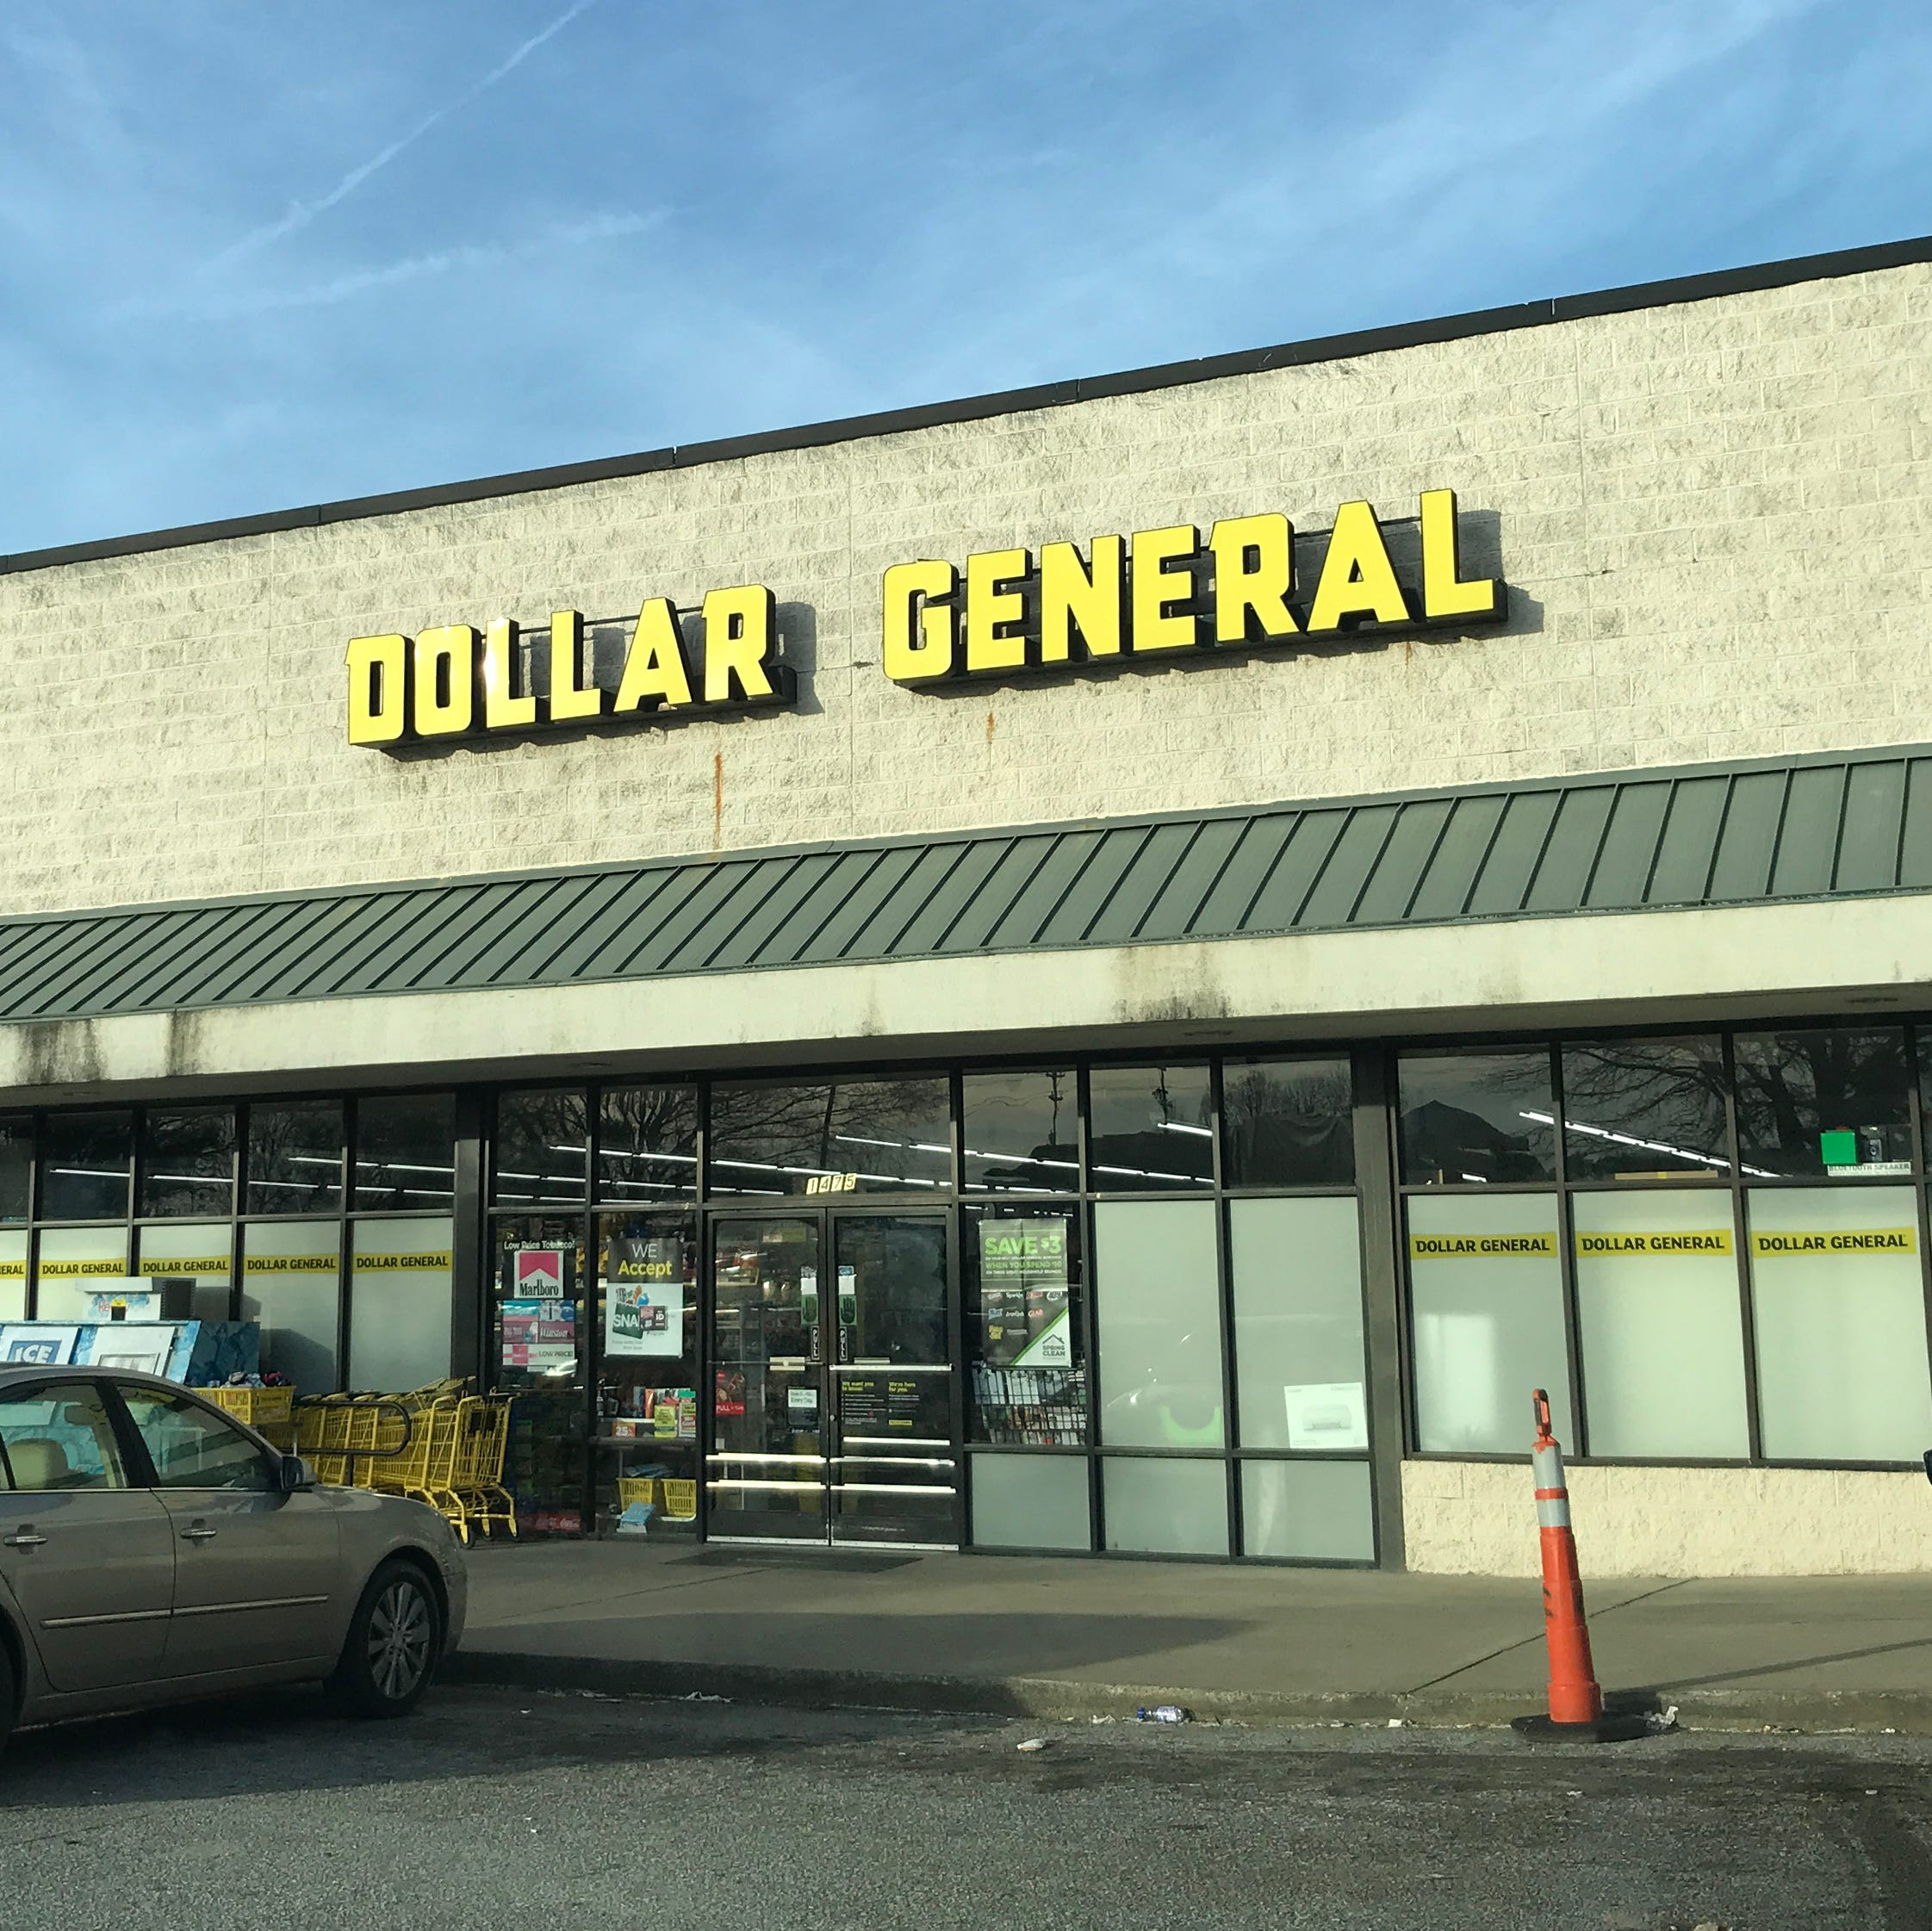 Staunton Planning Commission gives opinion on Dollar General special-use permit application